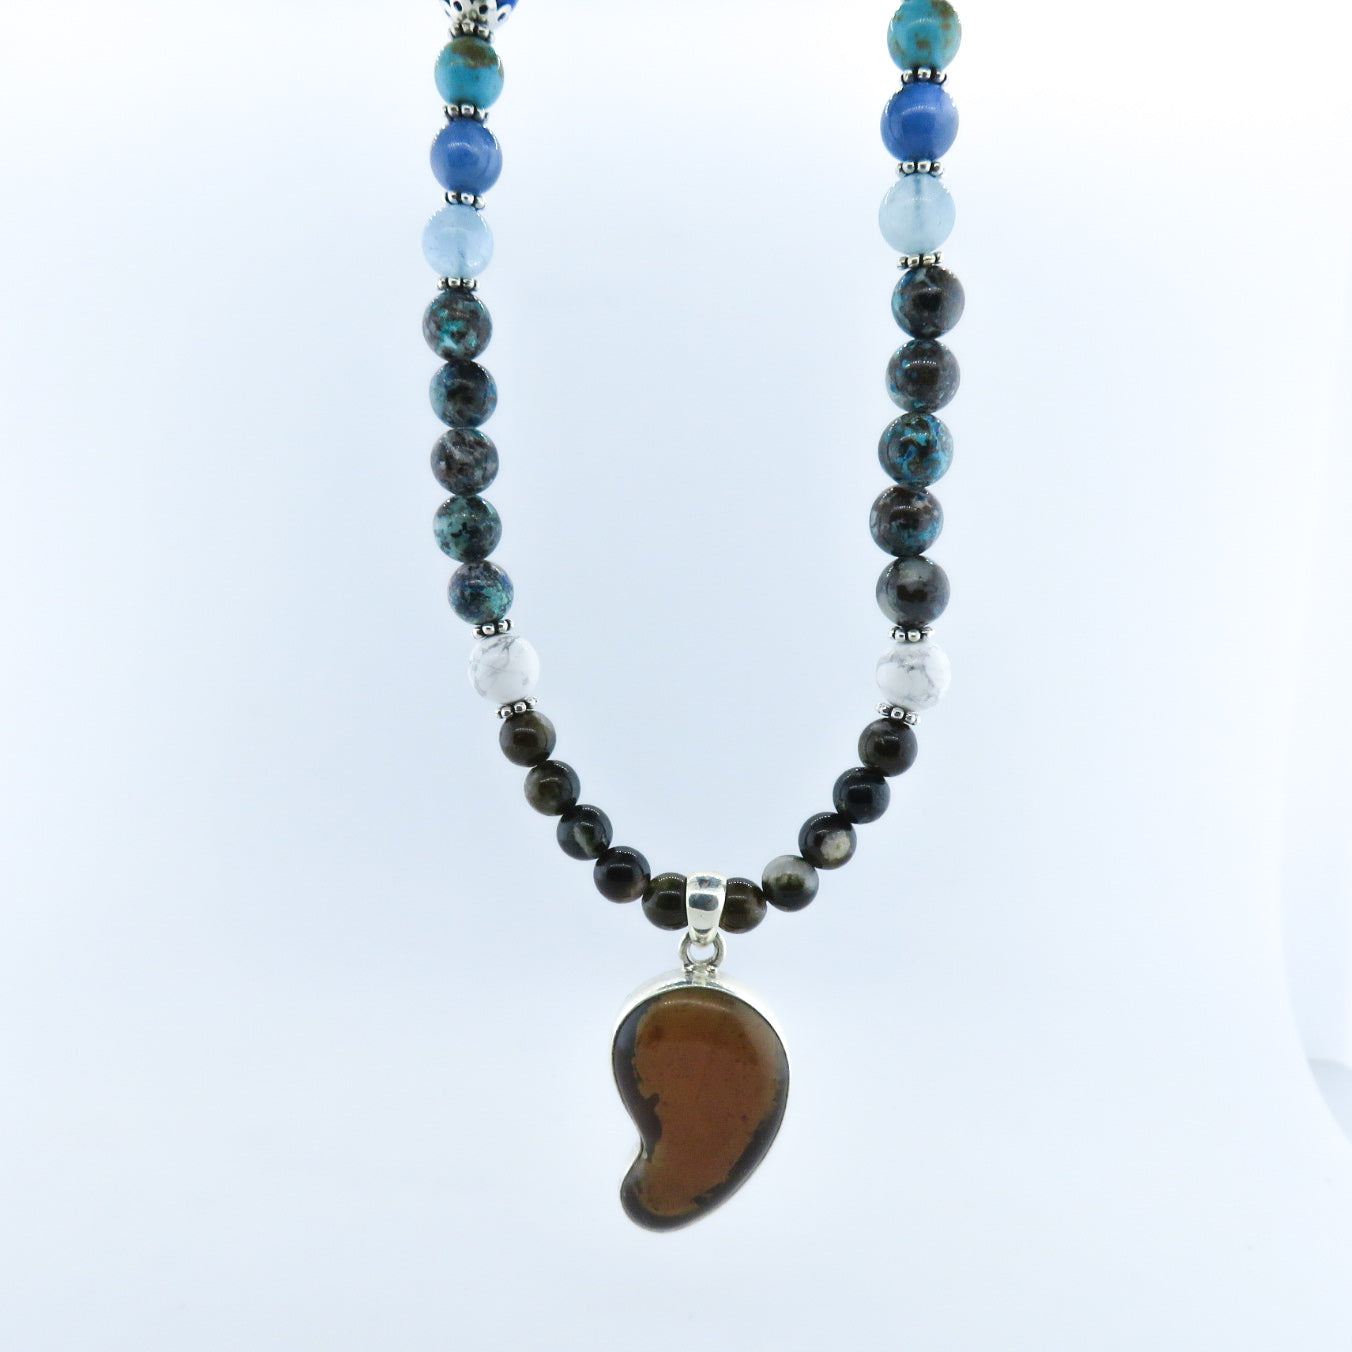 Amber Necklace with Chrysocolla, Aquamarine, Lapis Lazuli, Turquoise, Kyanite and Silver Beads.with Lava and Silver Beads